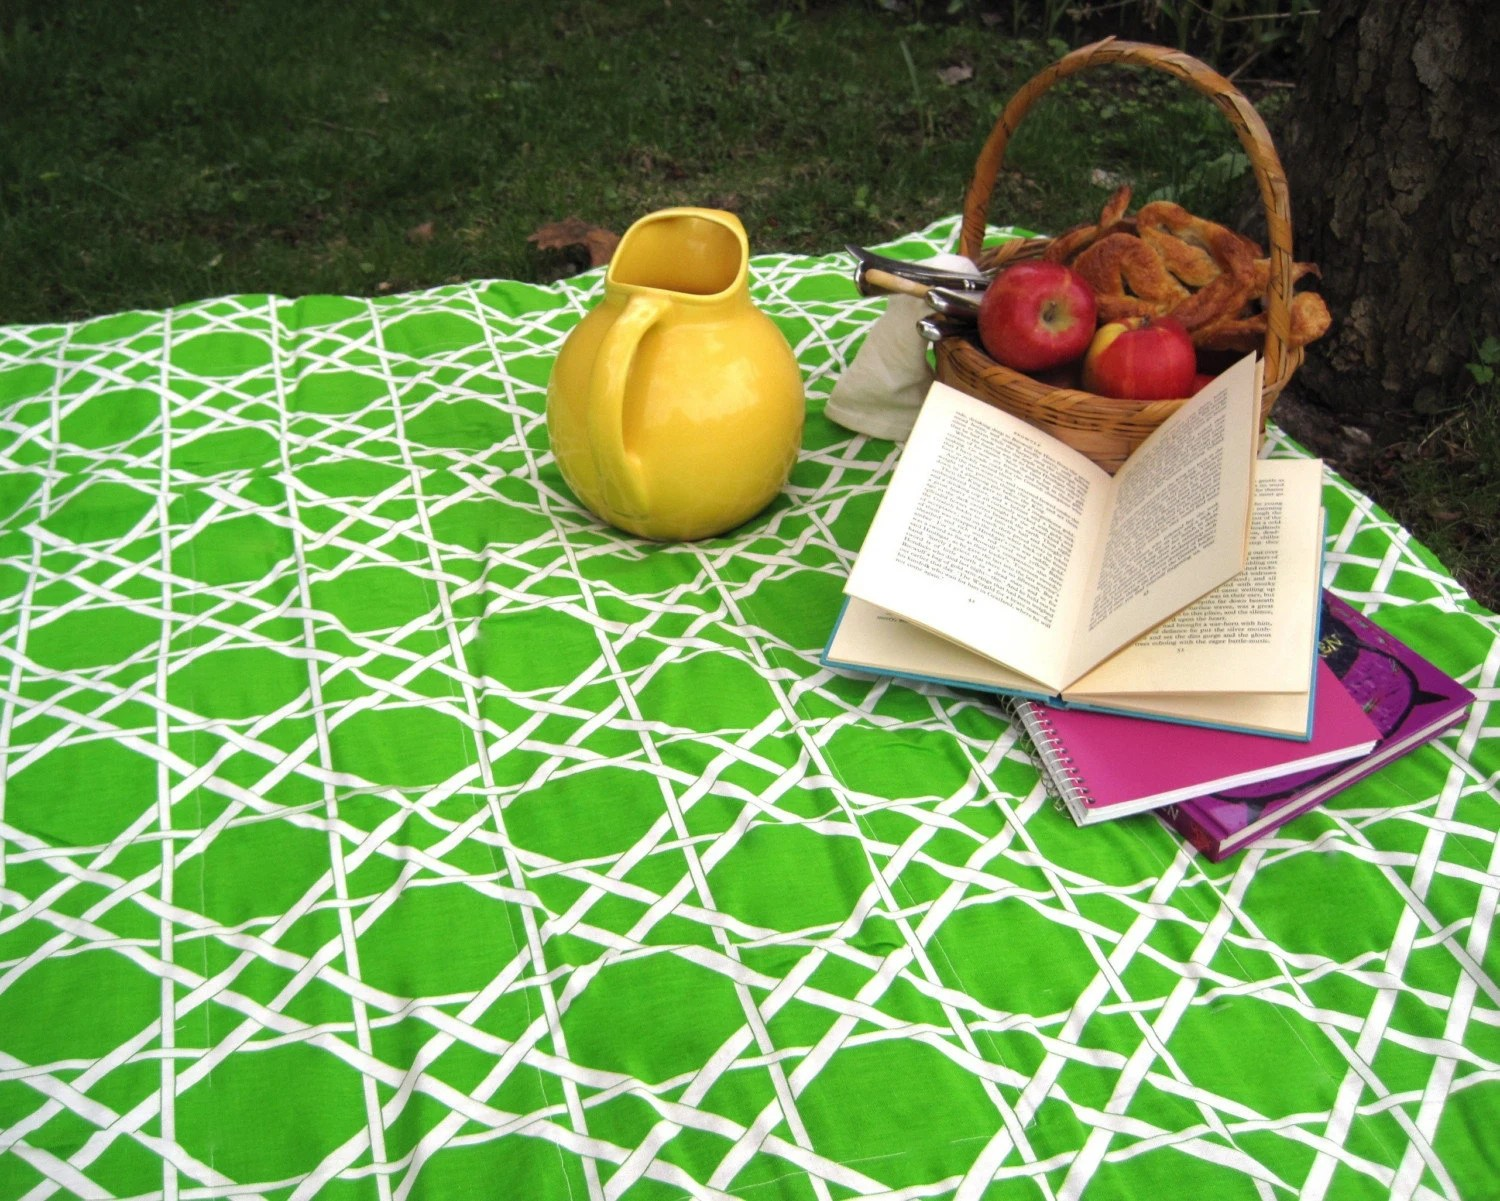 Upcycled Vintage picnic blanket by SewnNatural